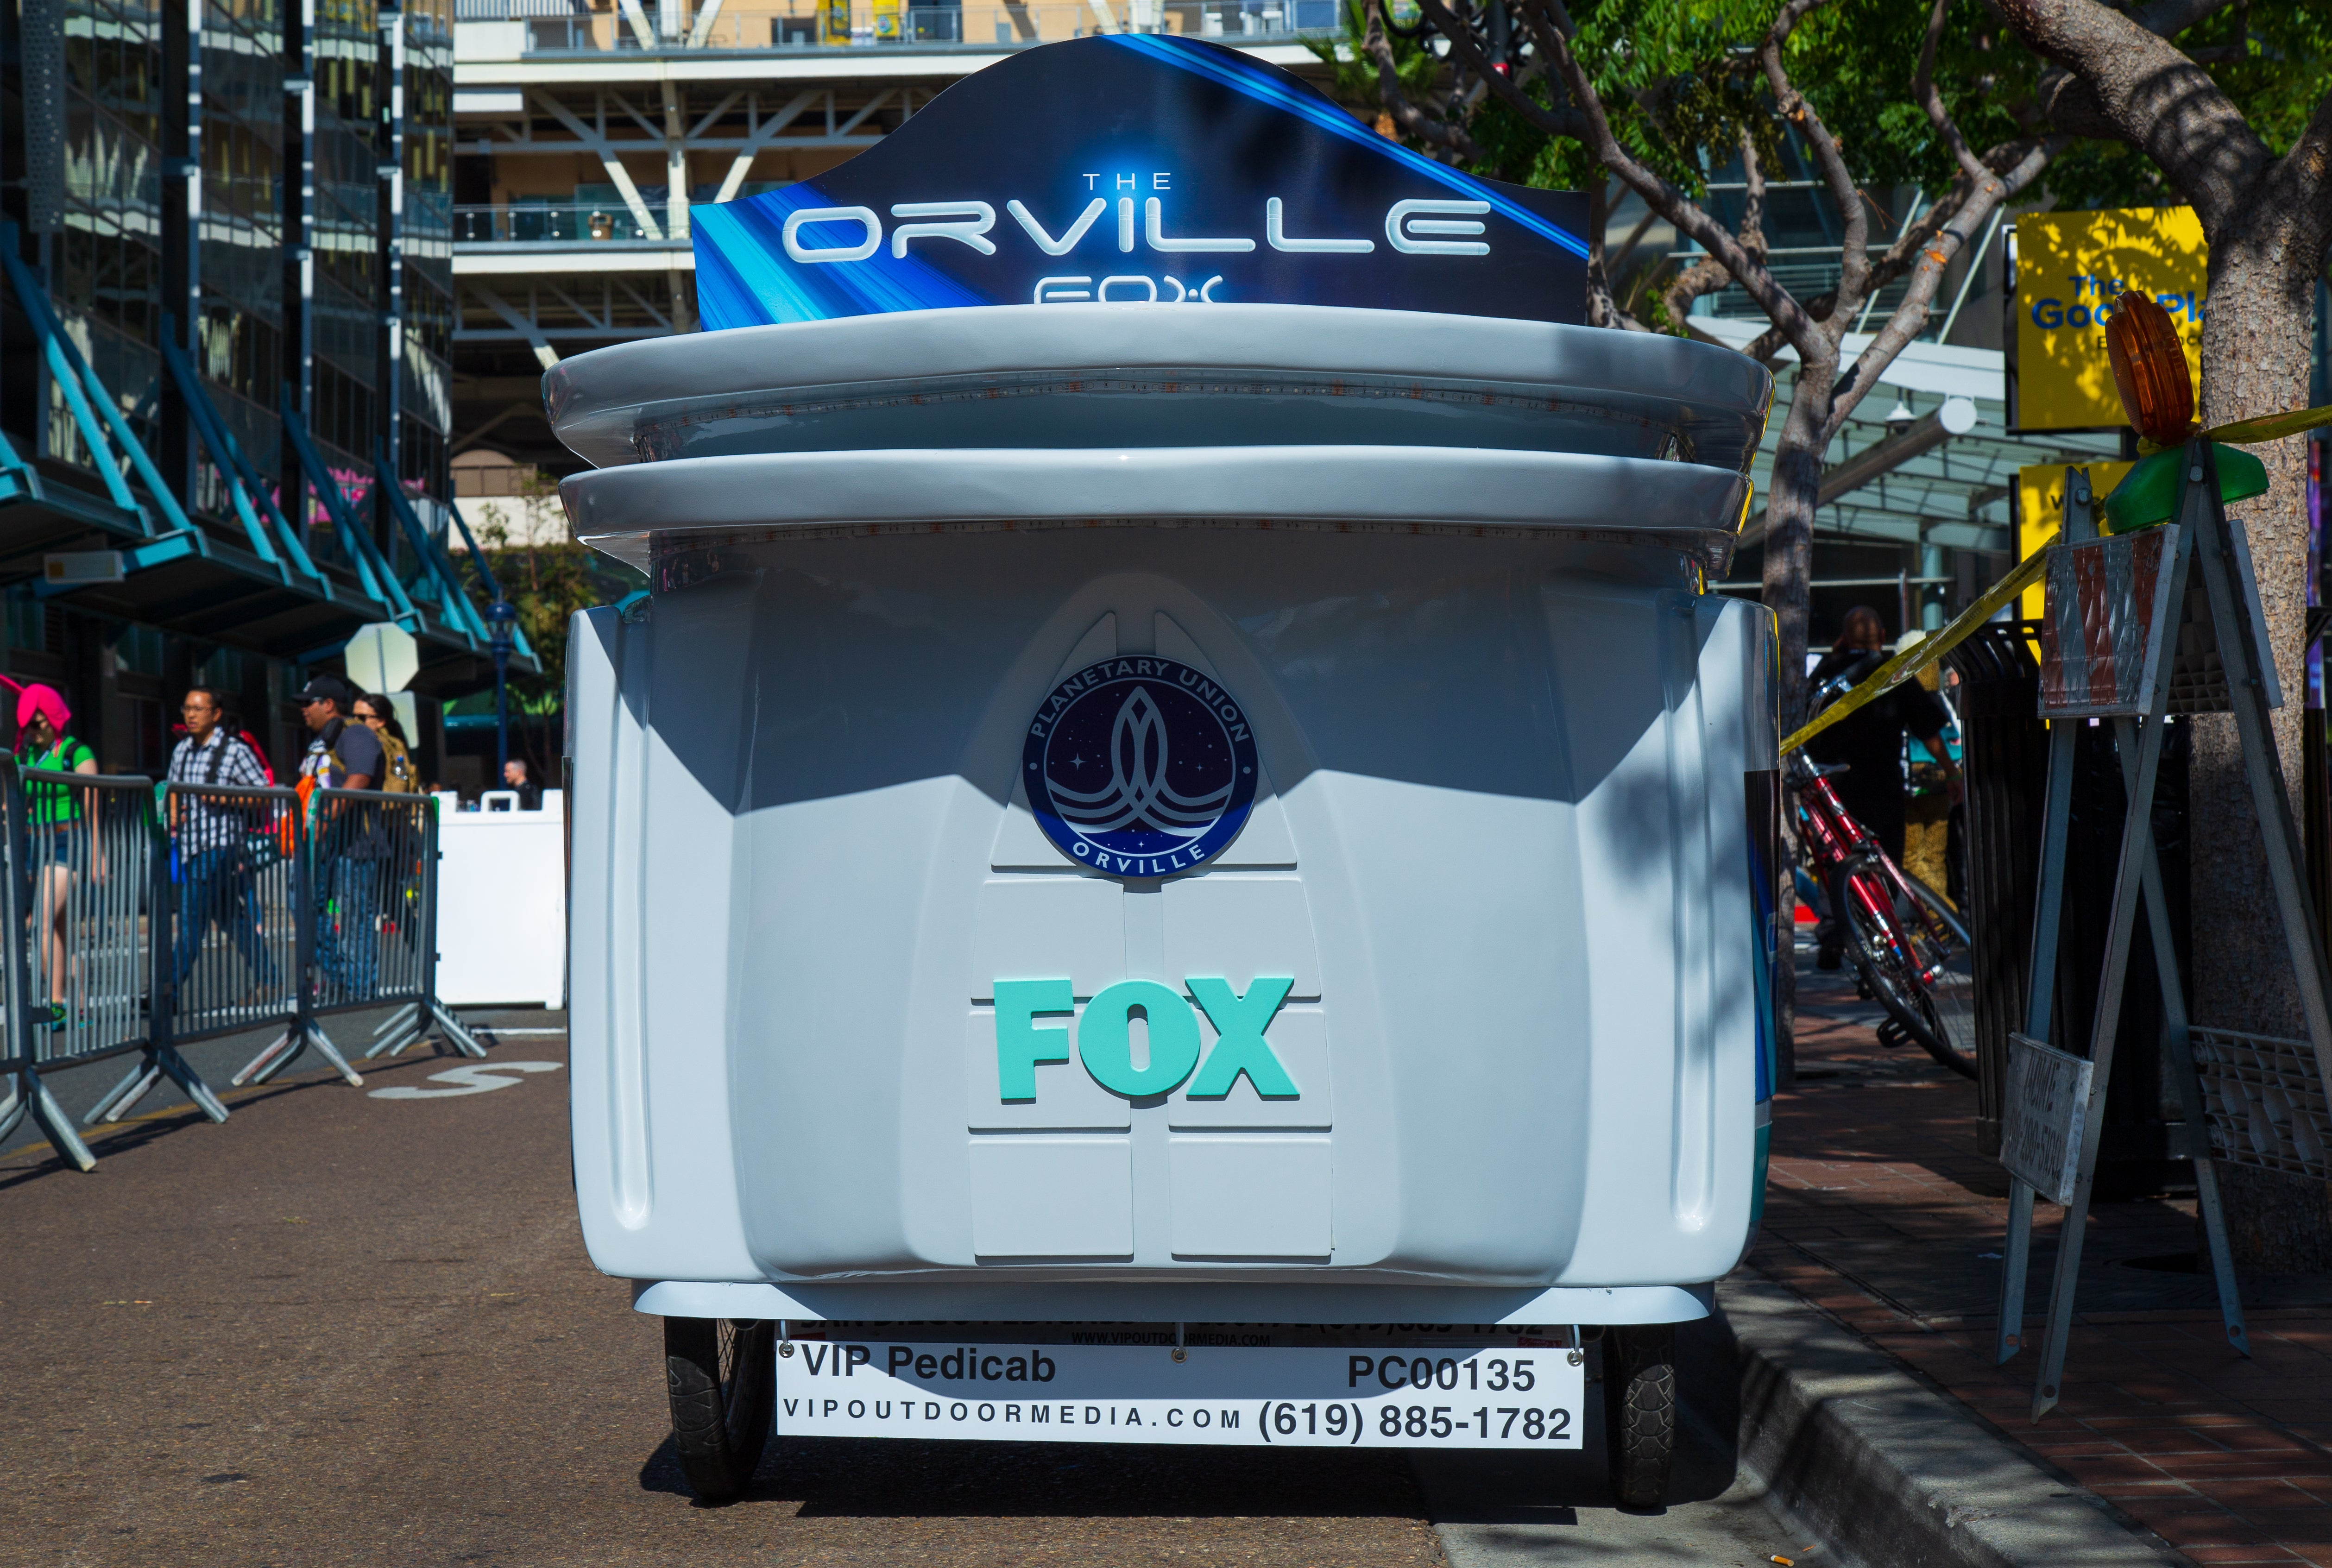 The Orville Pedicab - VIP Custom Cycles